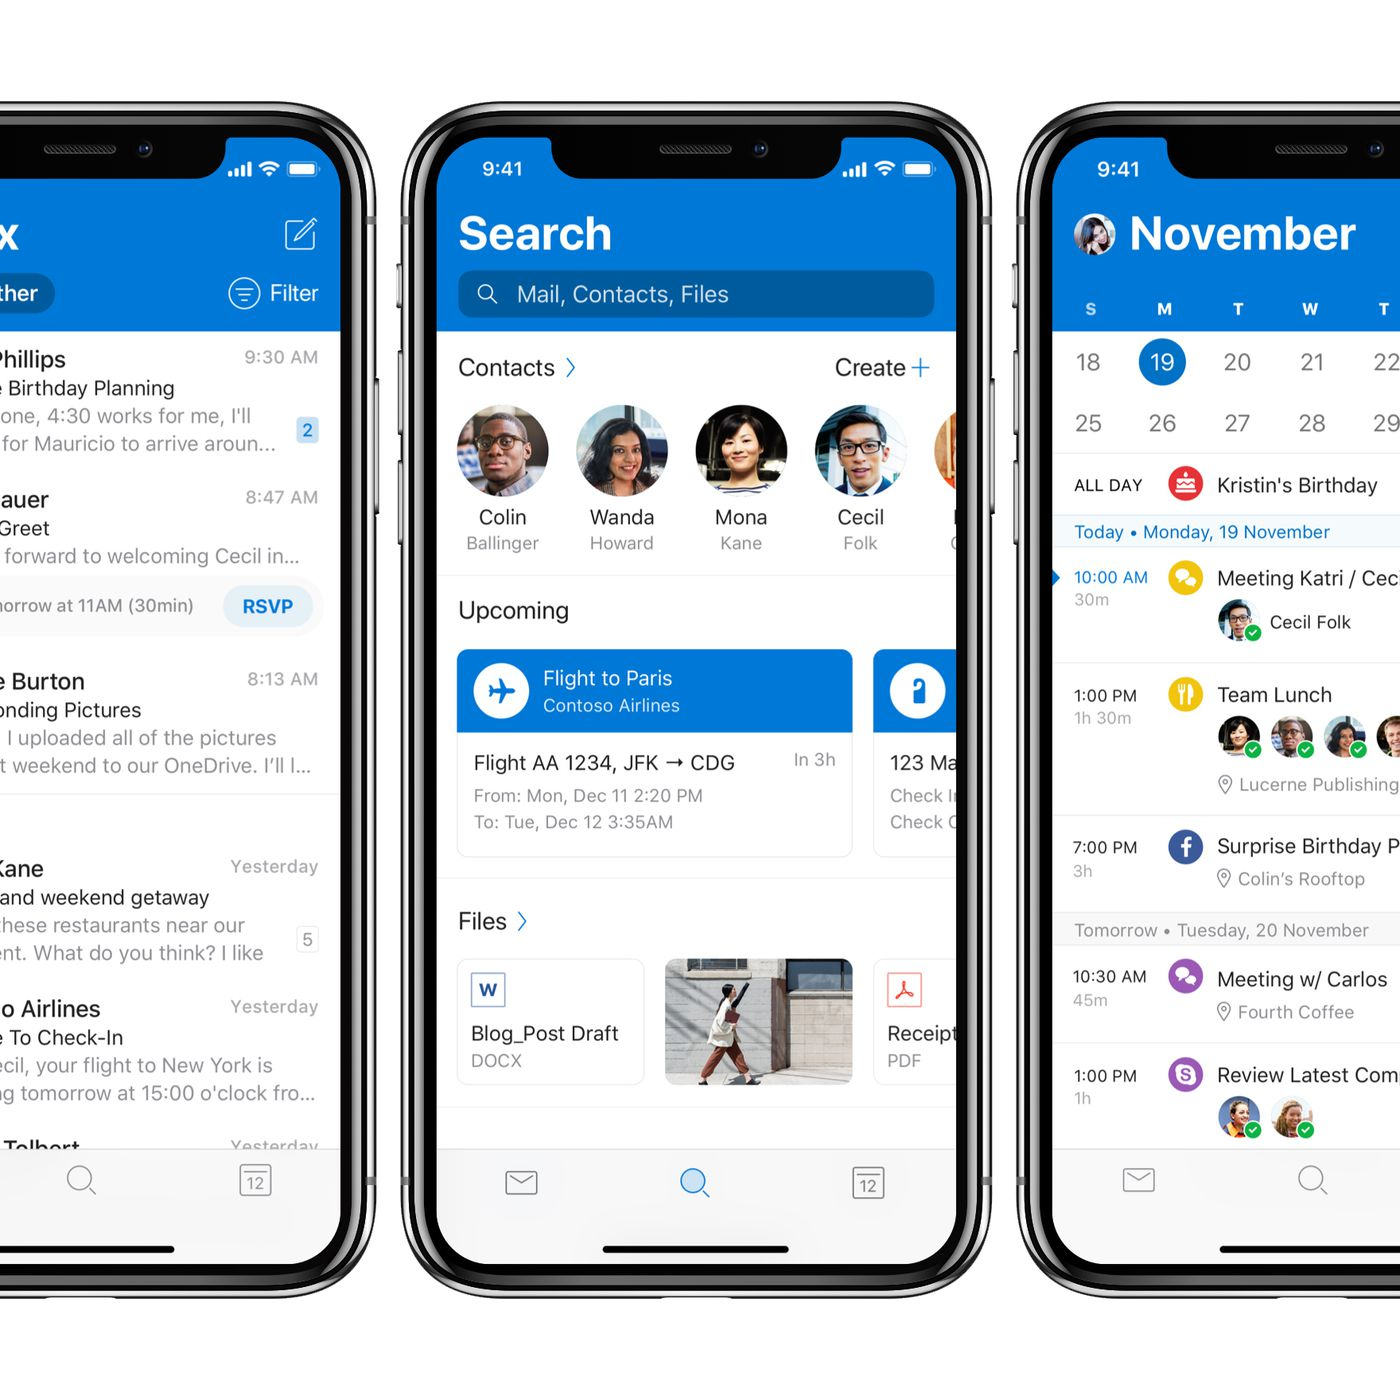 Microsoft Outlook for iOS is getting a new design and dark